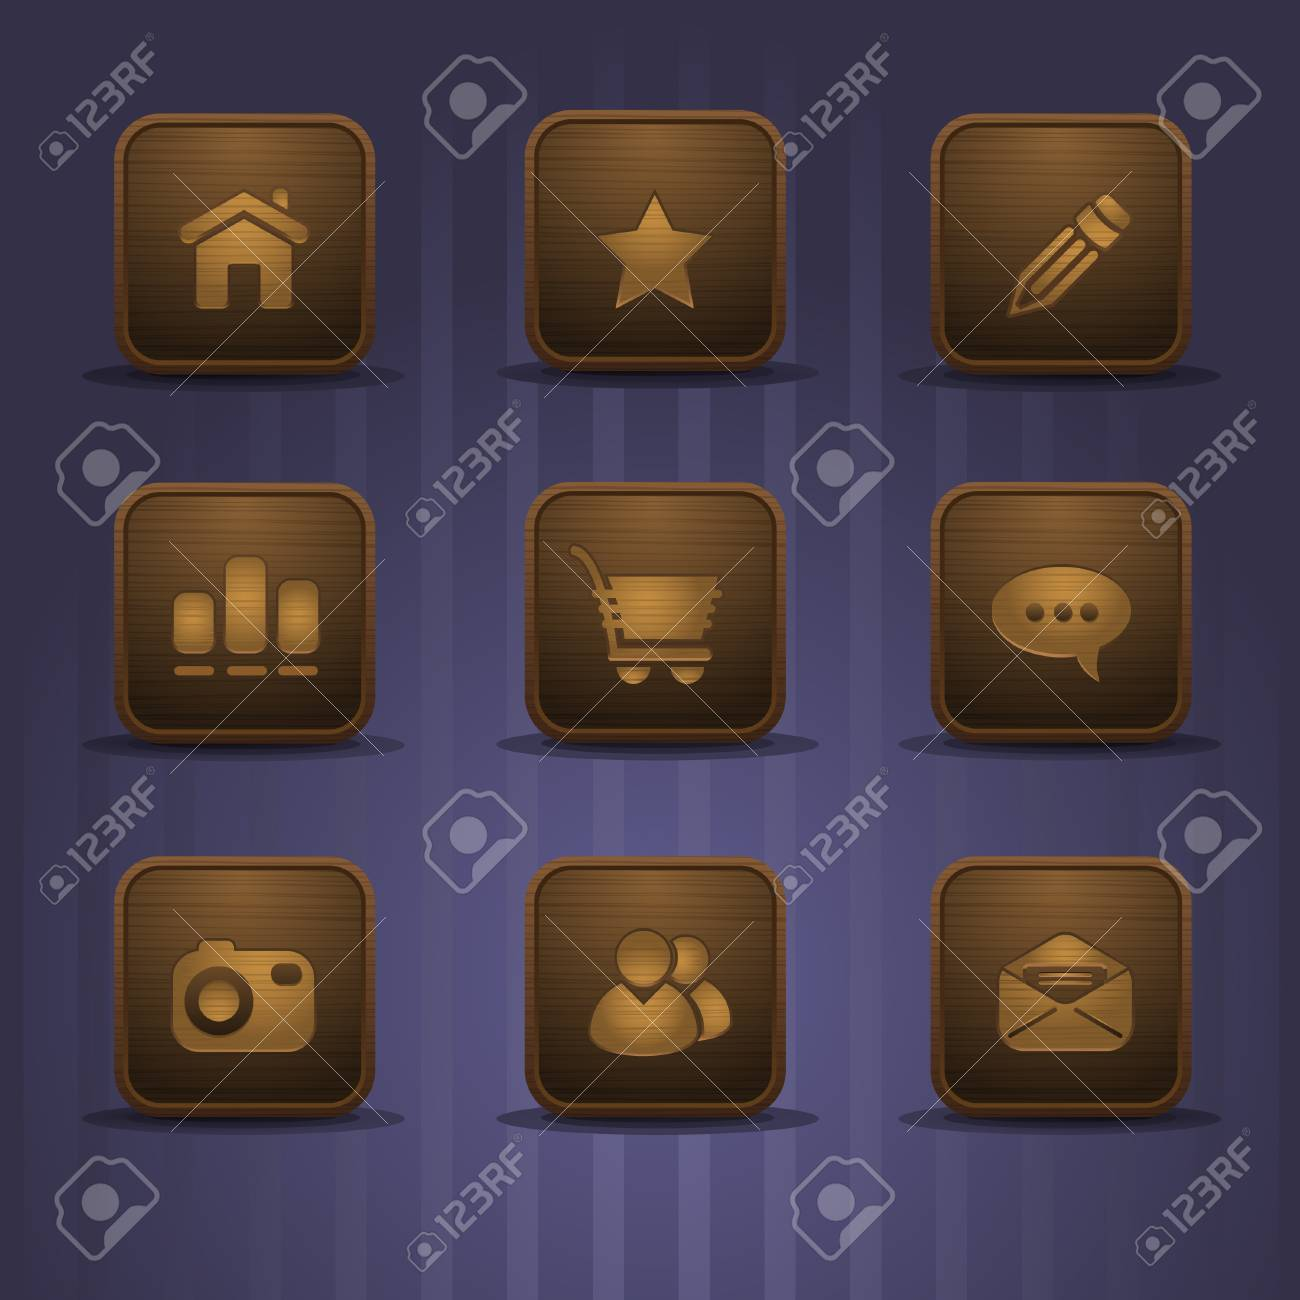 set of realistic wooden icons, part 1 Stock Vector - 8659299